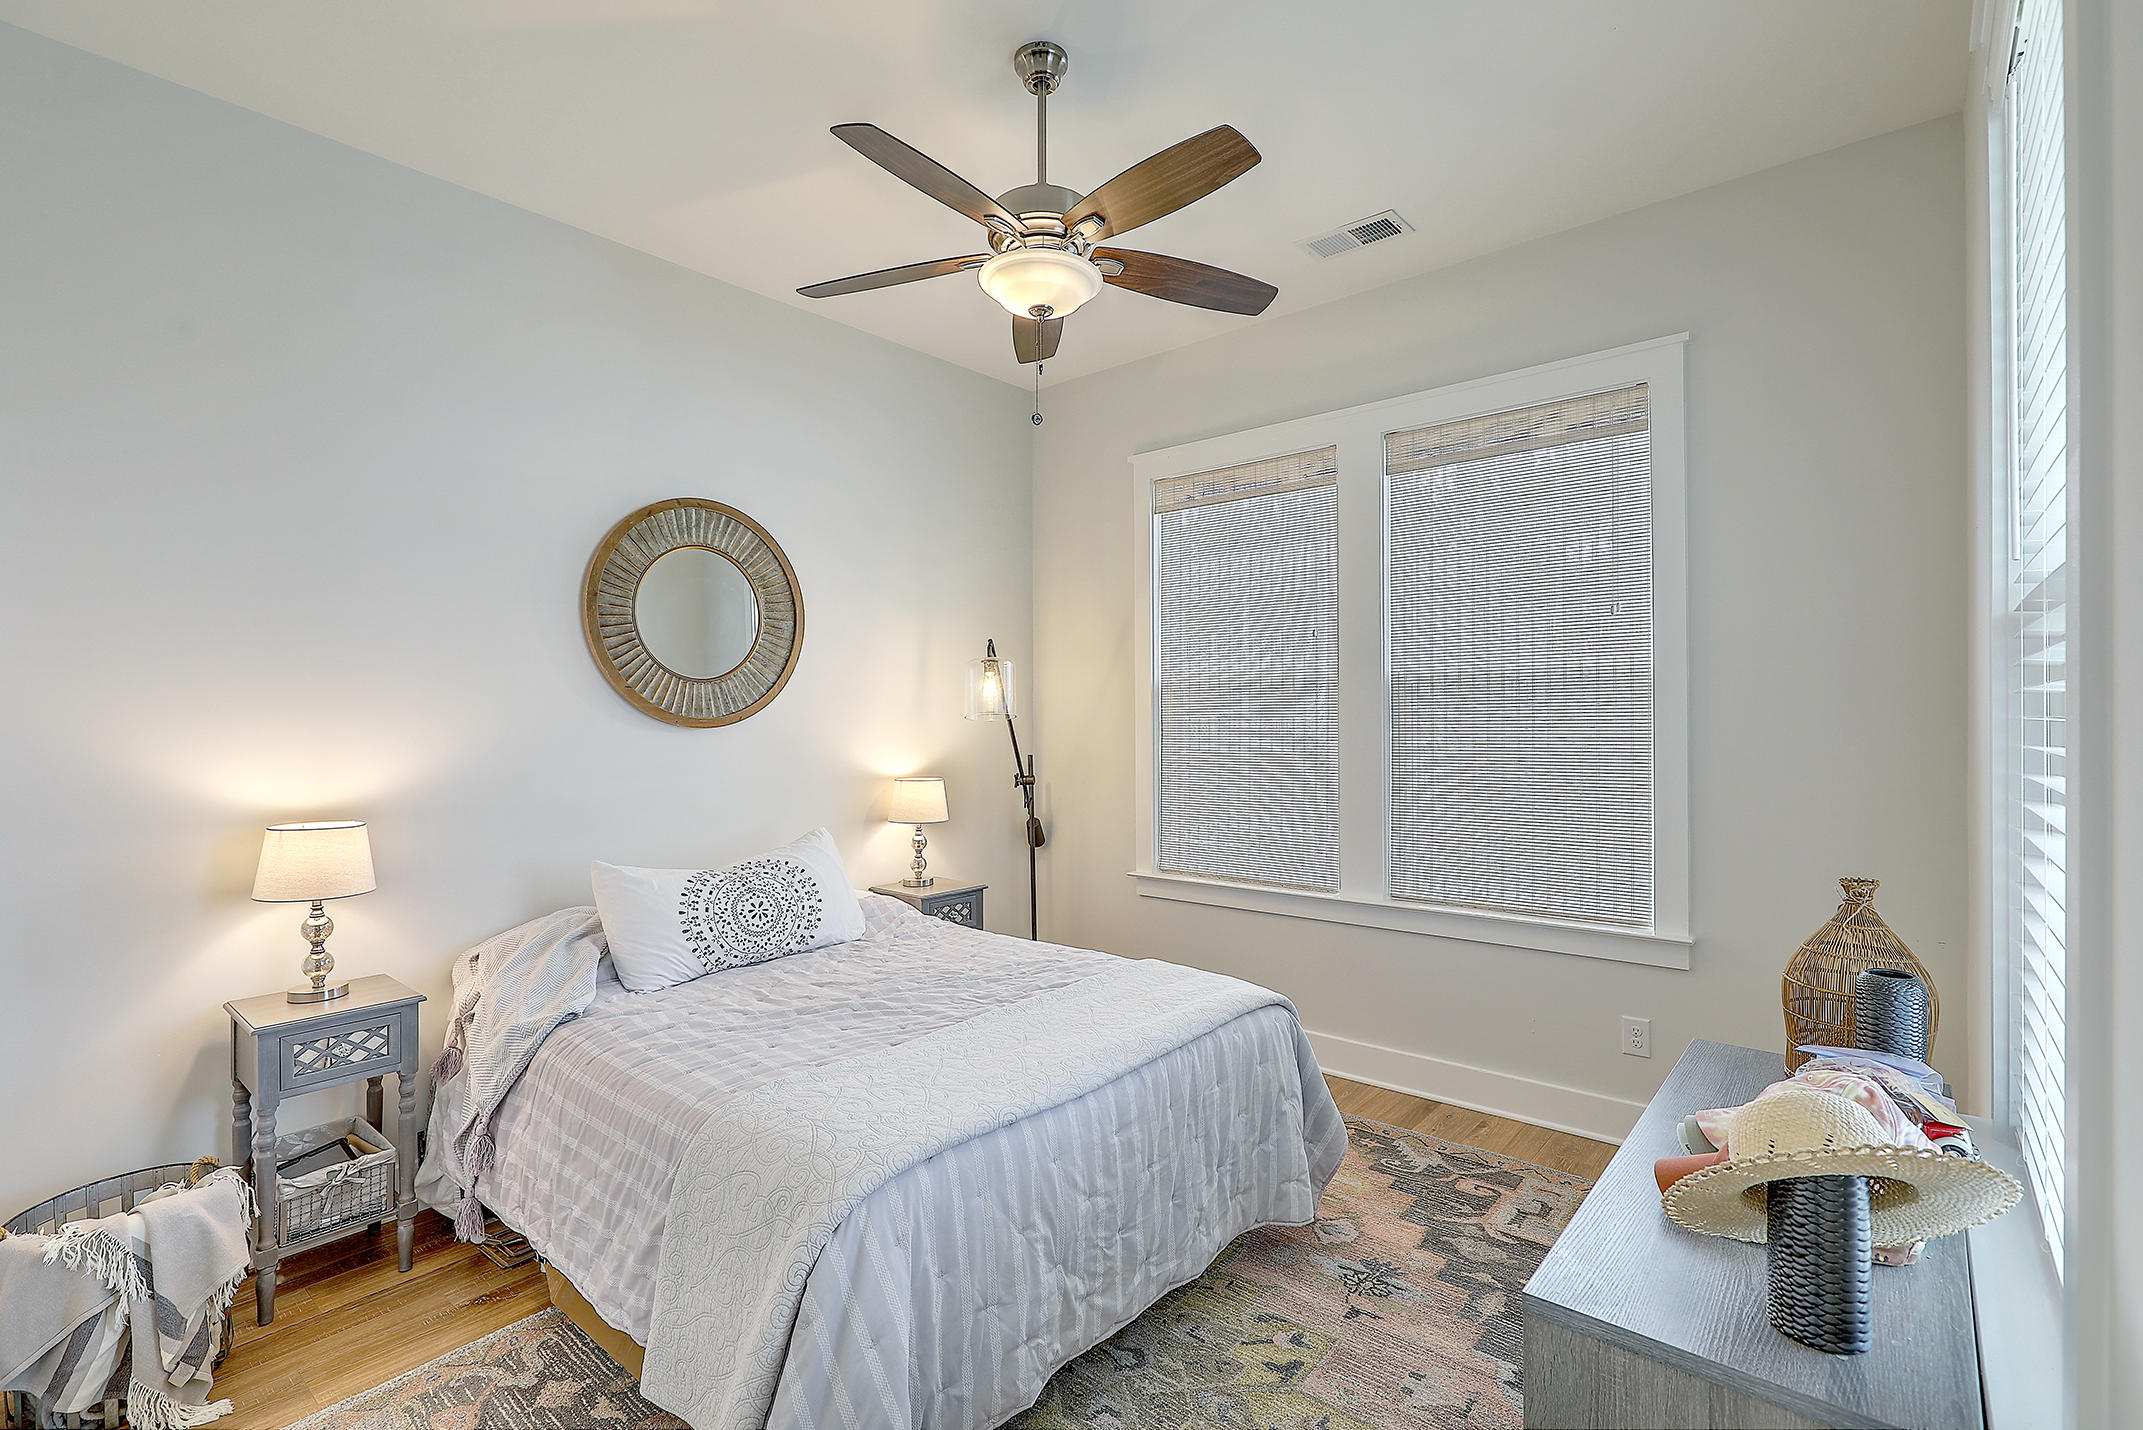 Stratton by the Sound Homes For Sale - 3473 Saltflat, Mount Pleasant, SC - 19